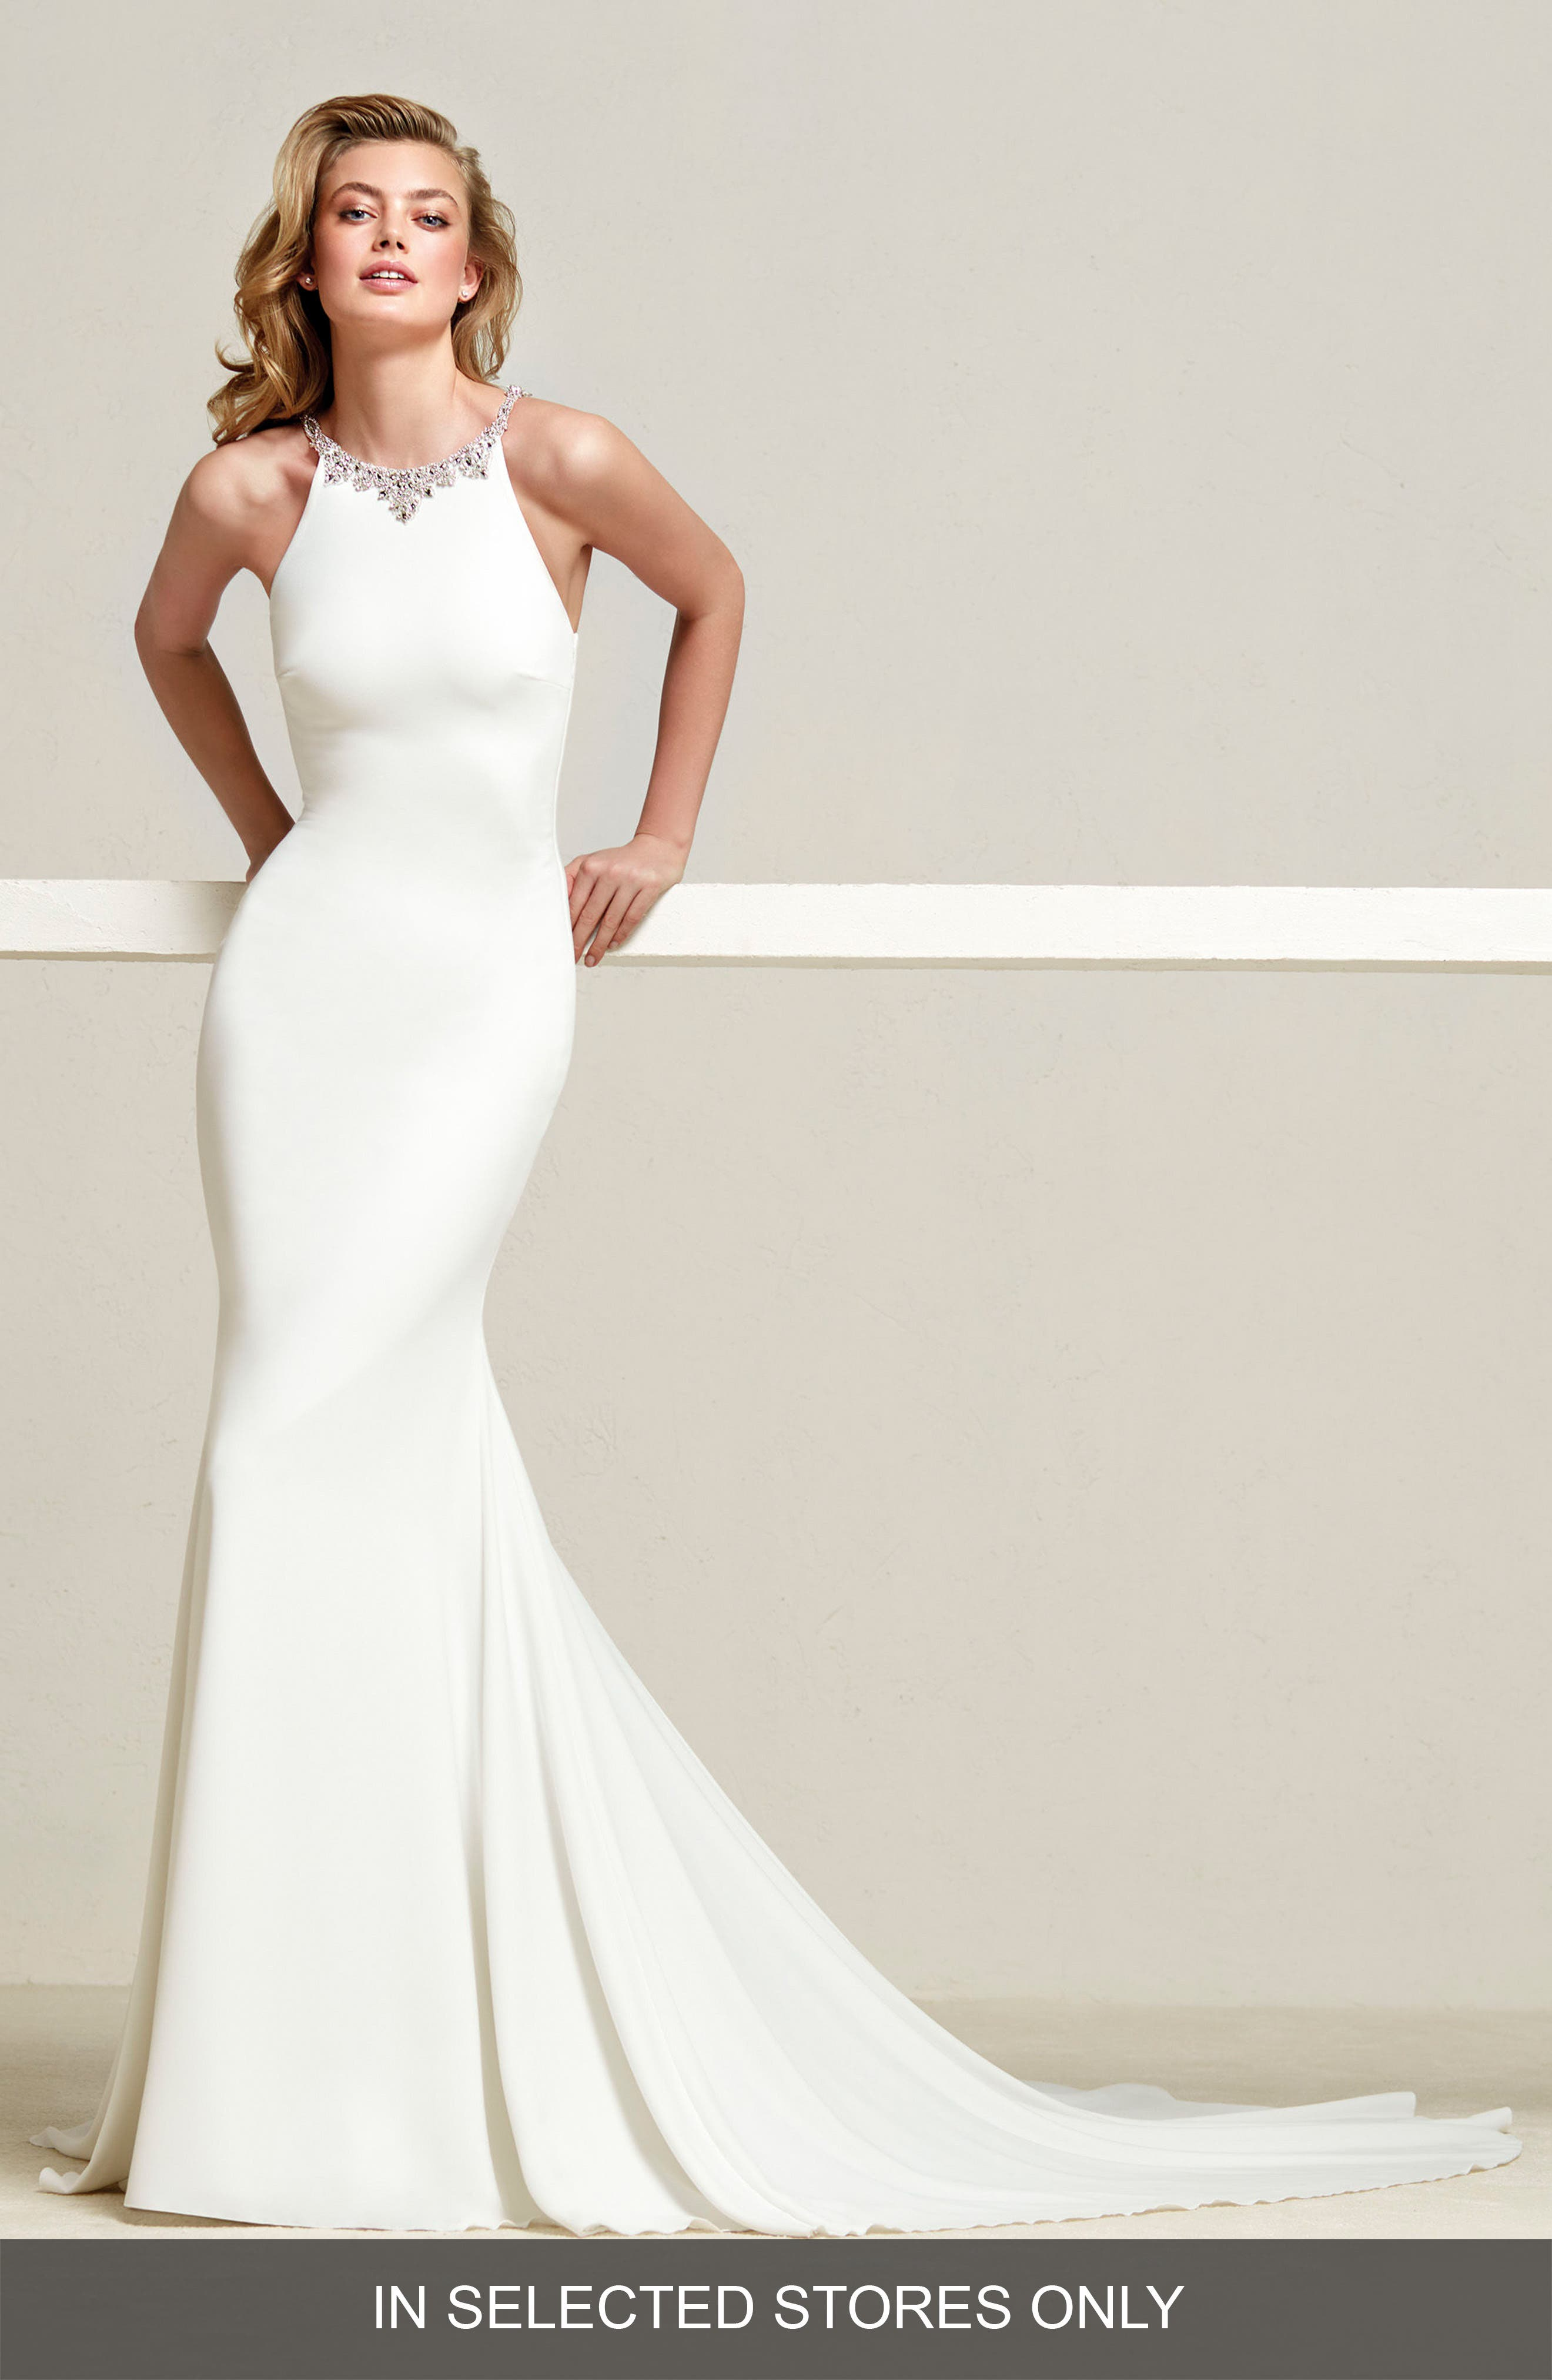 Dreba Jeweled Back Crepe Mermaid Gown,                         Main,                         color, Off White/Crystal